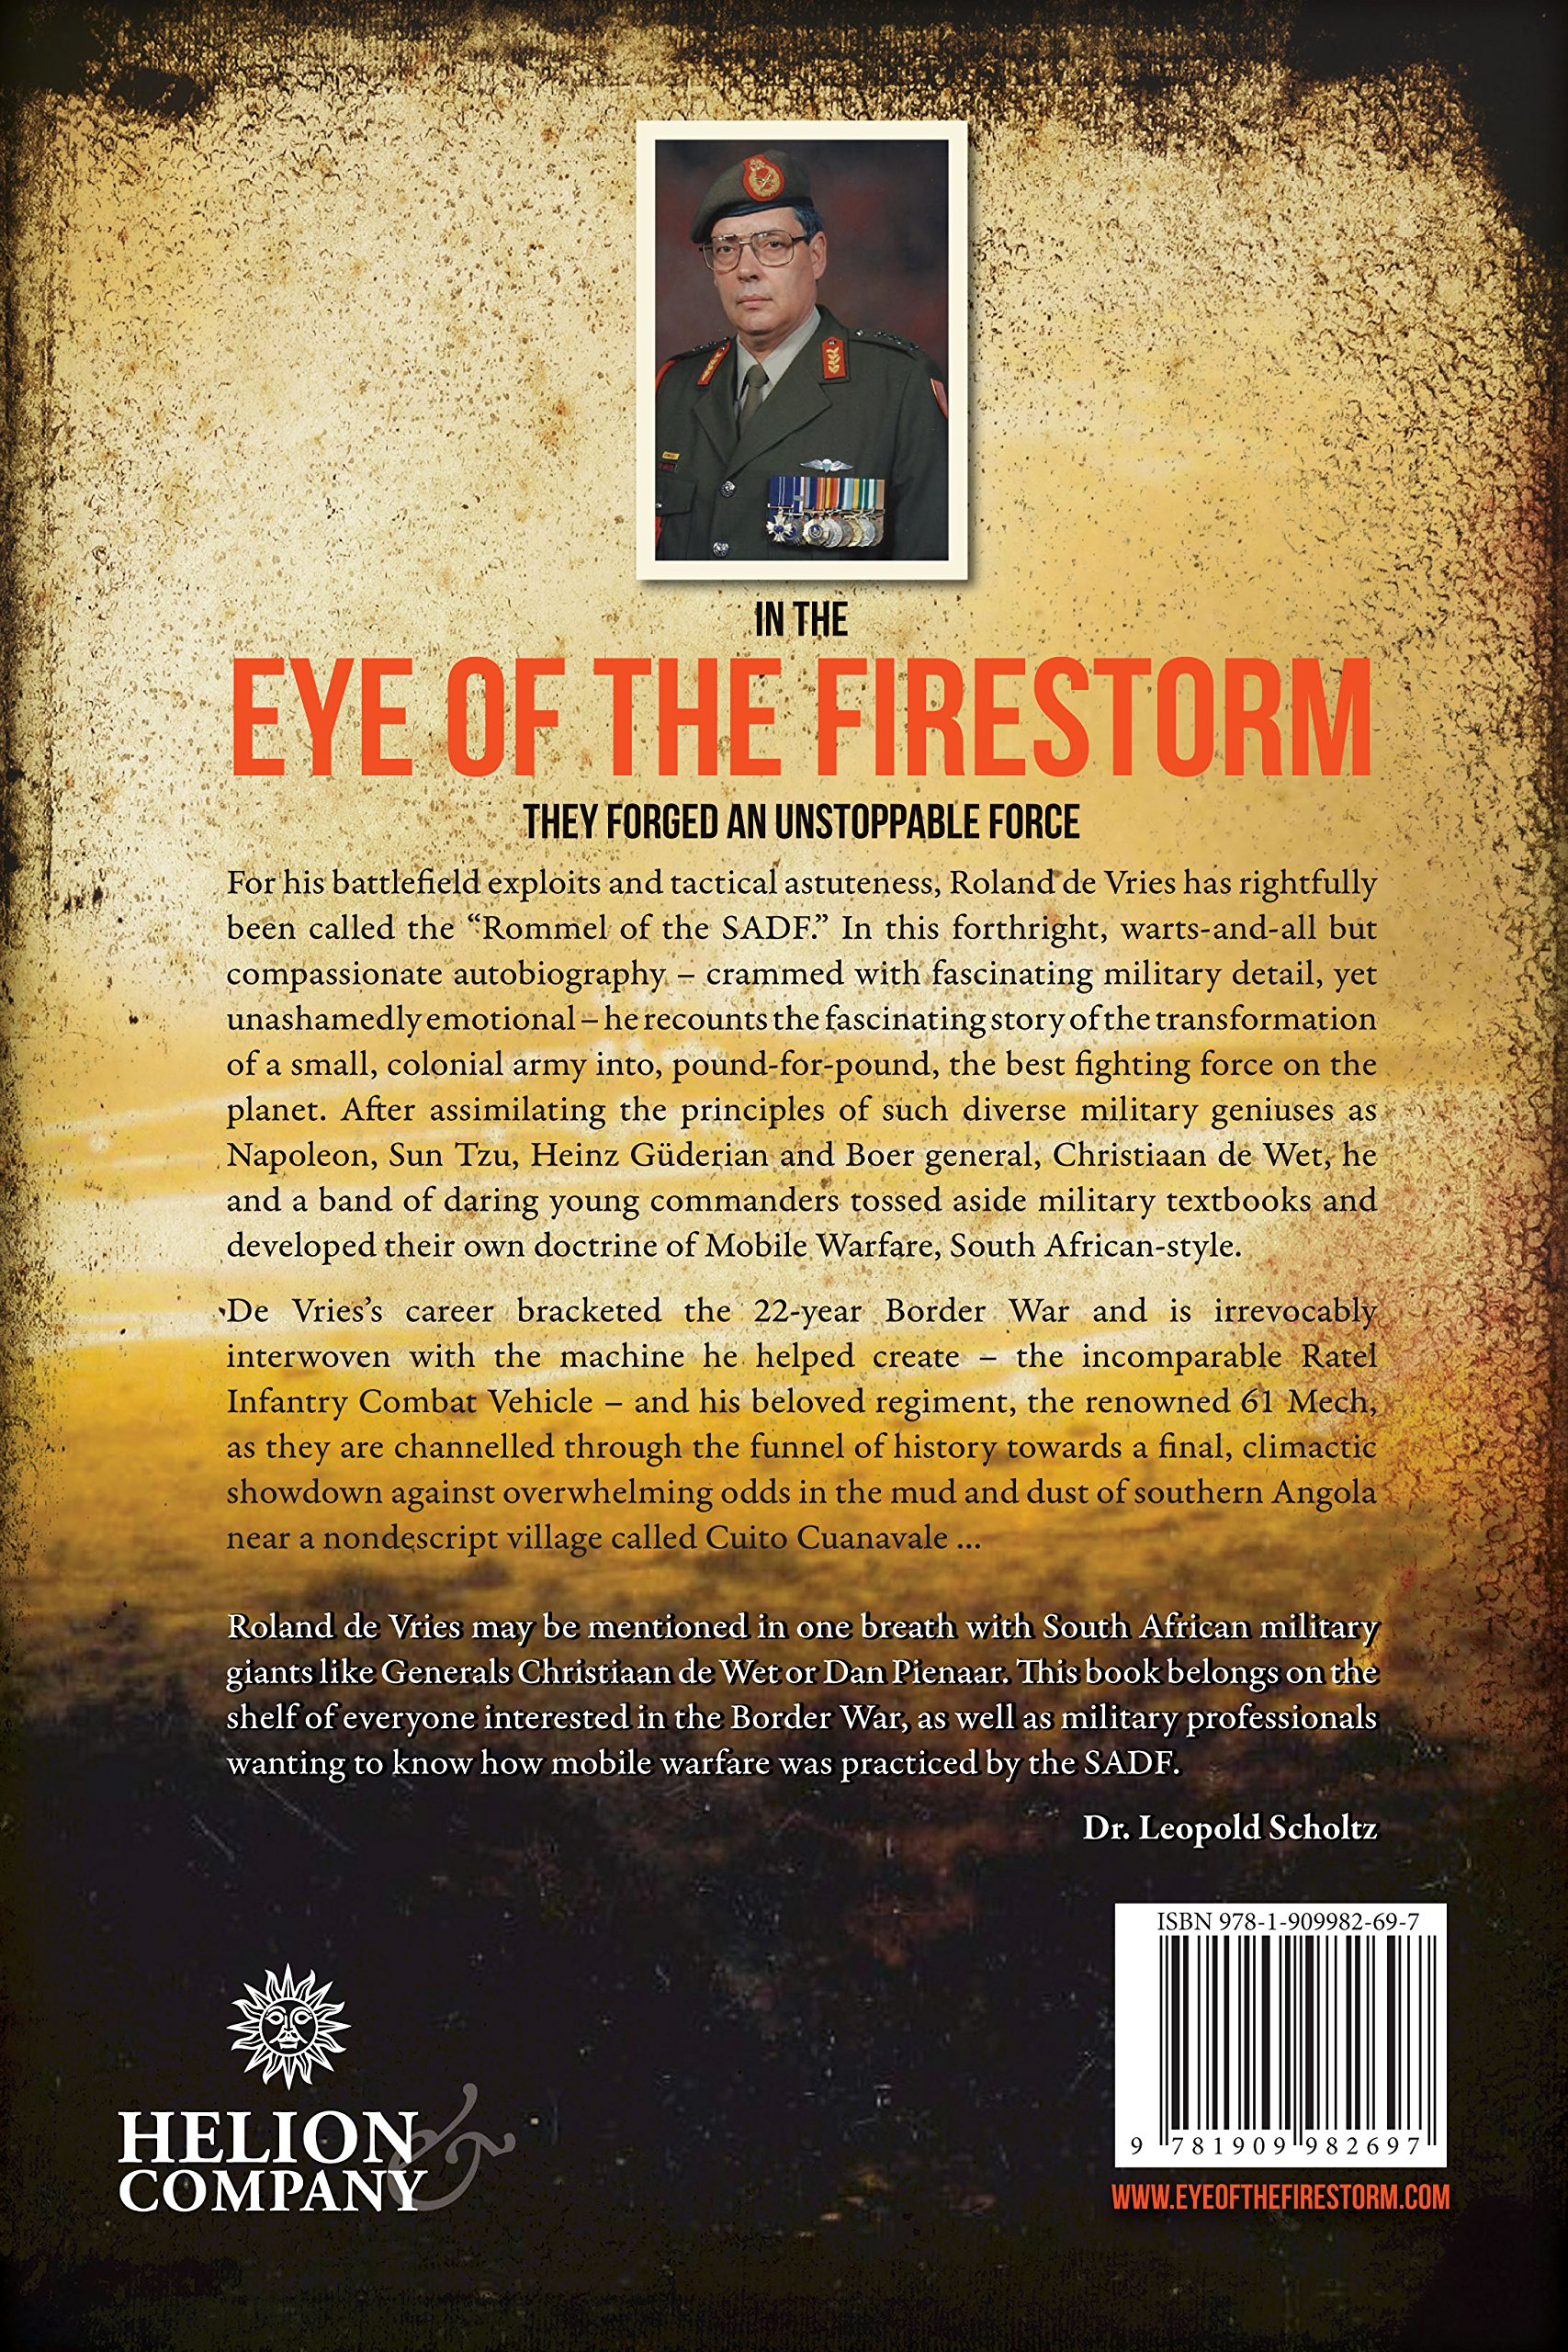 Eye of the firestorm the namibian angolan south african border eye of the firestorm the namibian angolan south african border war memoirs of a military commander roland de vries 9781909982697 amazon books fandeluxe Image collections